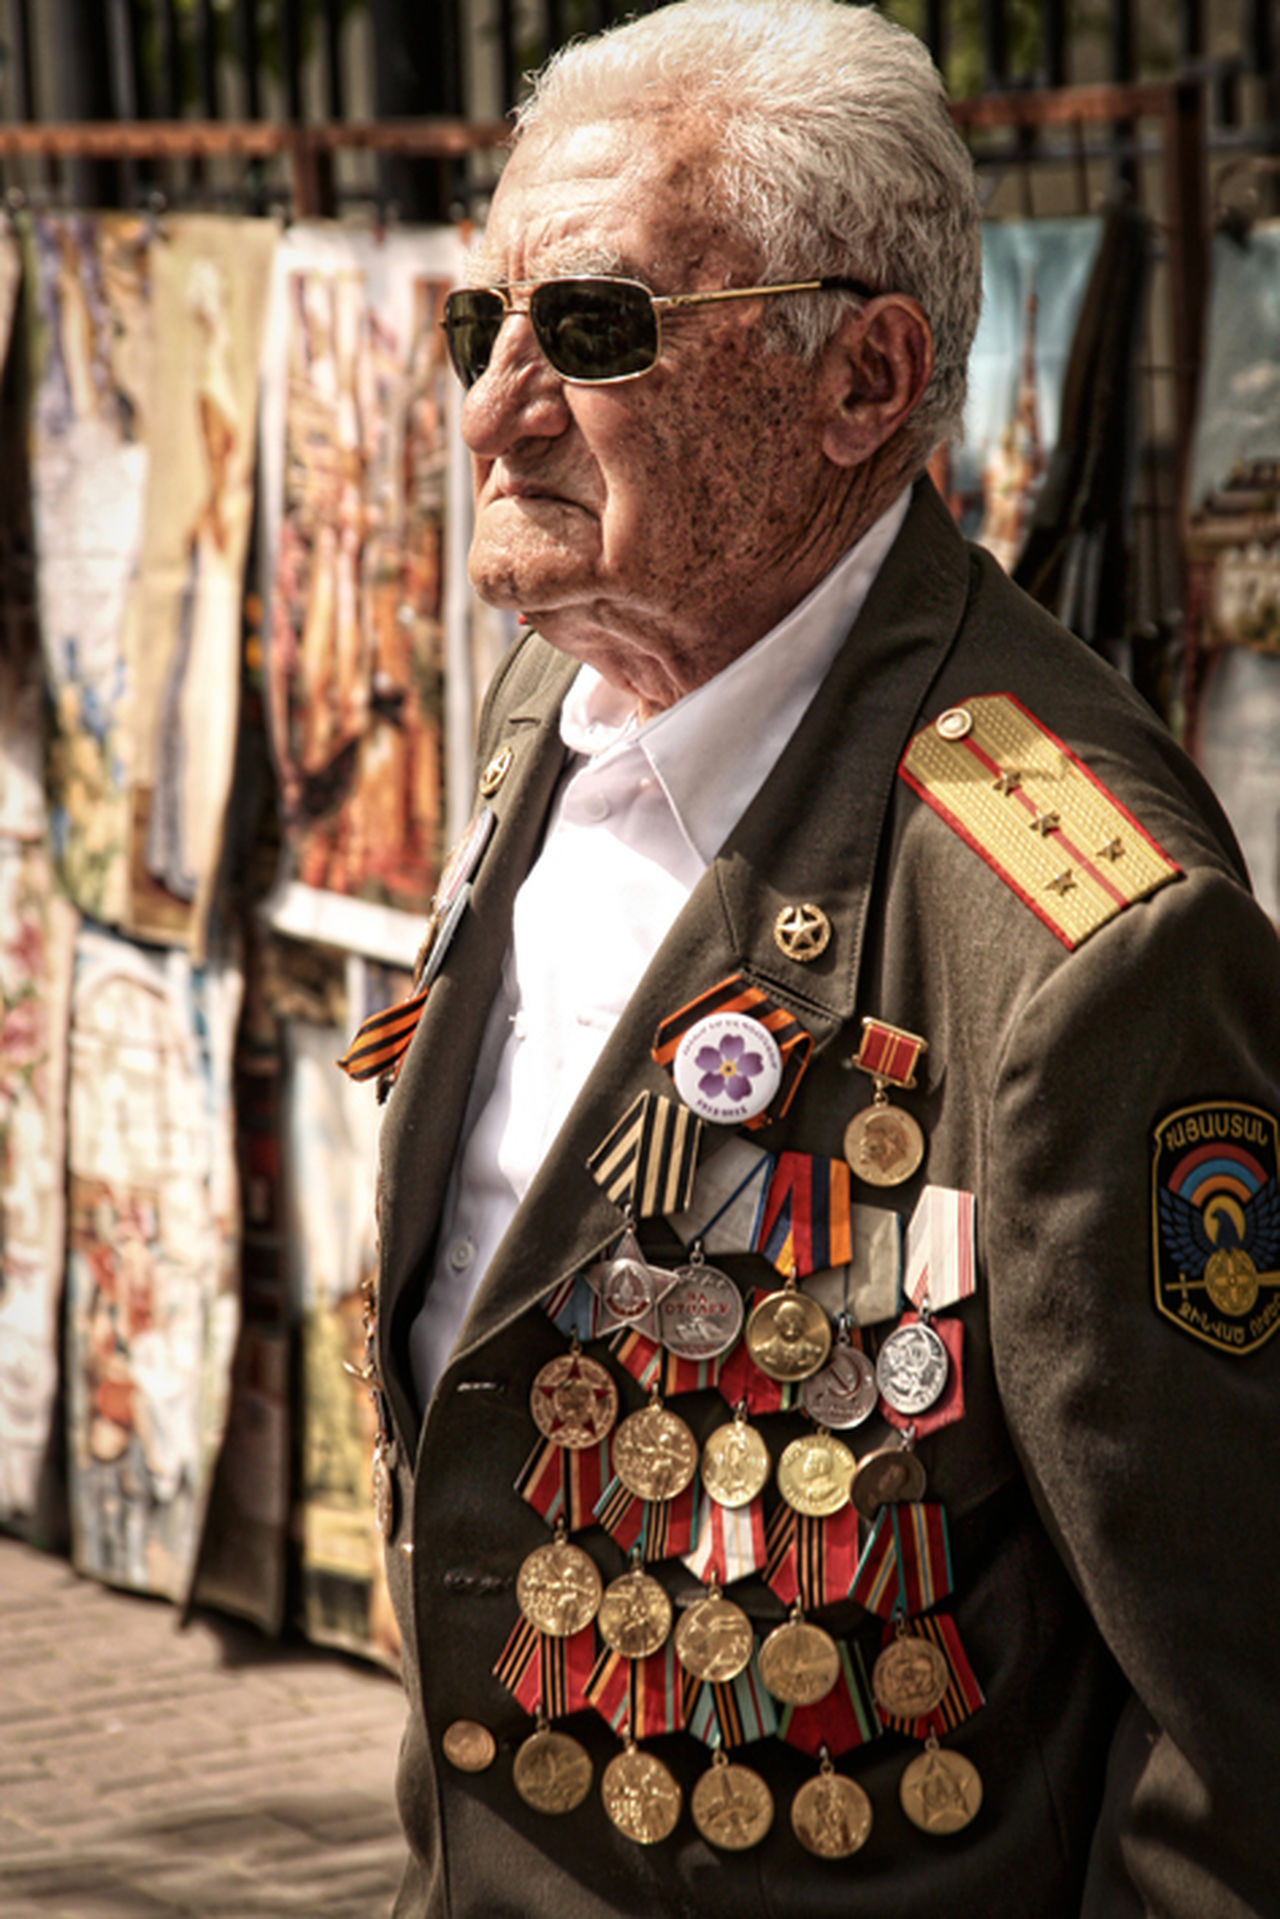 Old man, ex-russian soldier with military decoration - Russia/Moscow Adult Adults Only Men Military Decoration Moscow One Man Only One Person Only Men Outdoors Real People Russia Senior Adult Senior Men Soldier